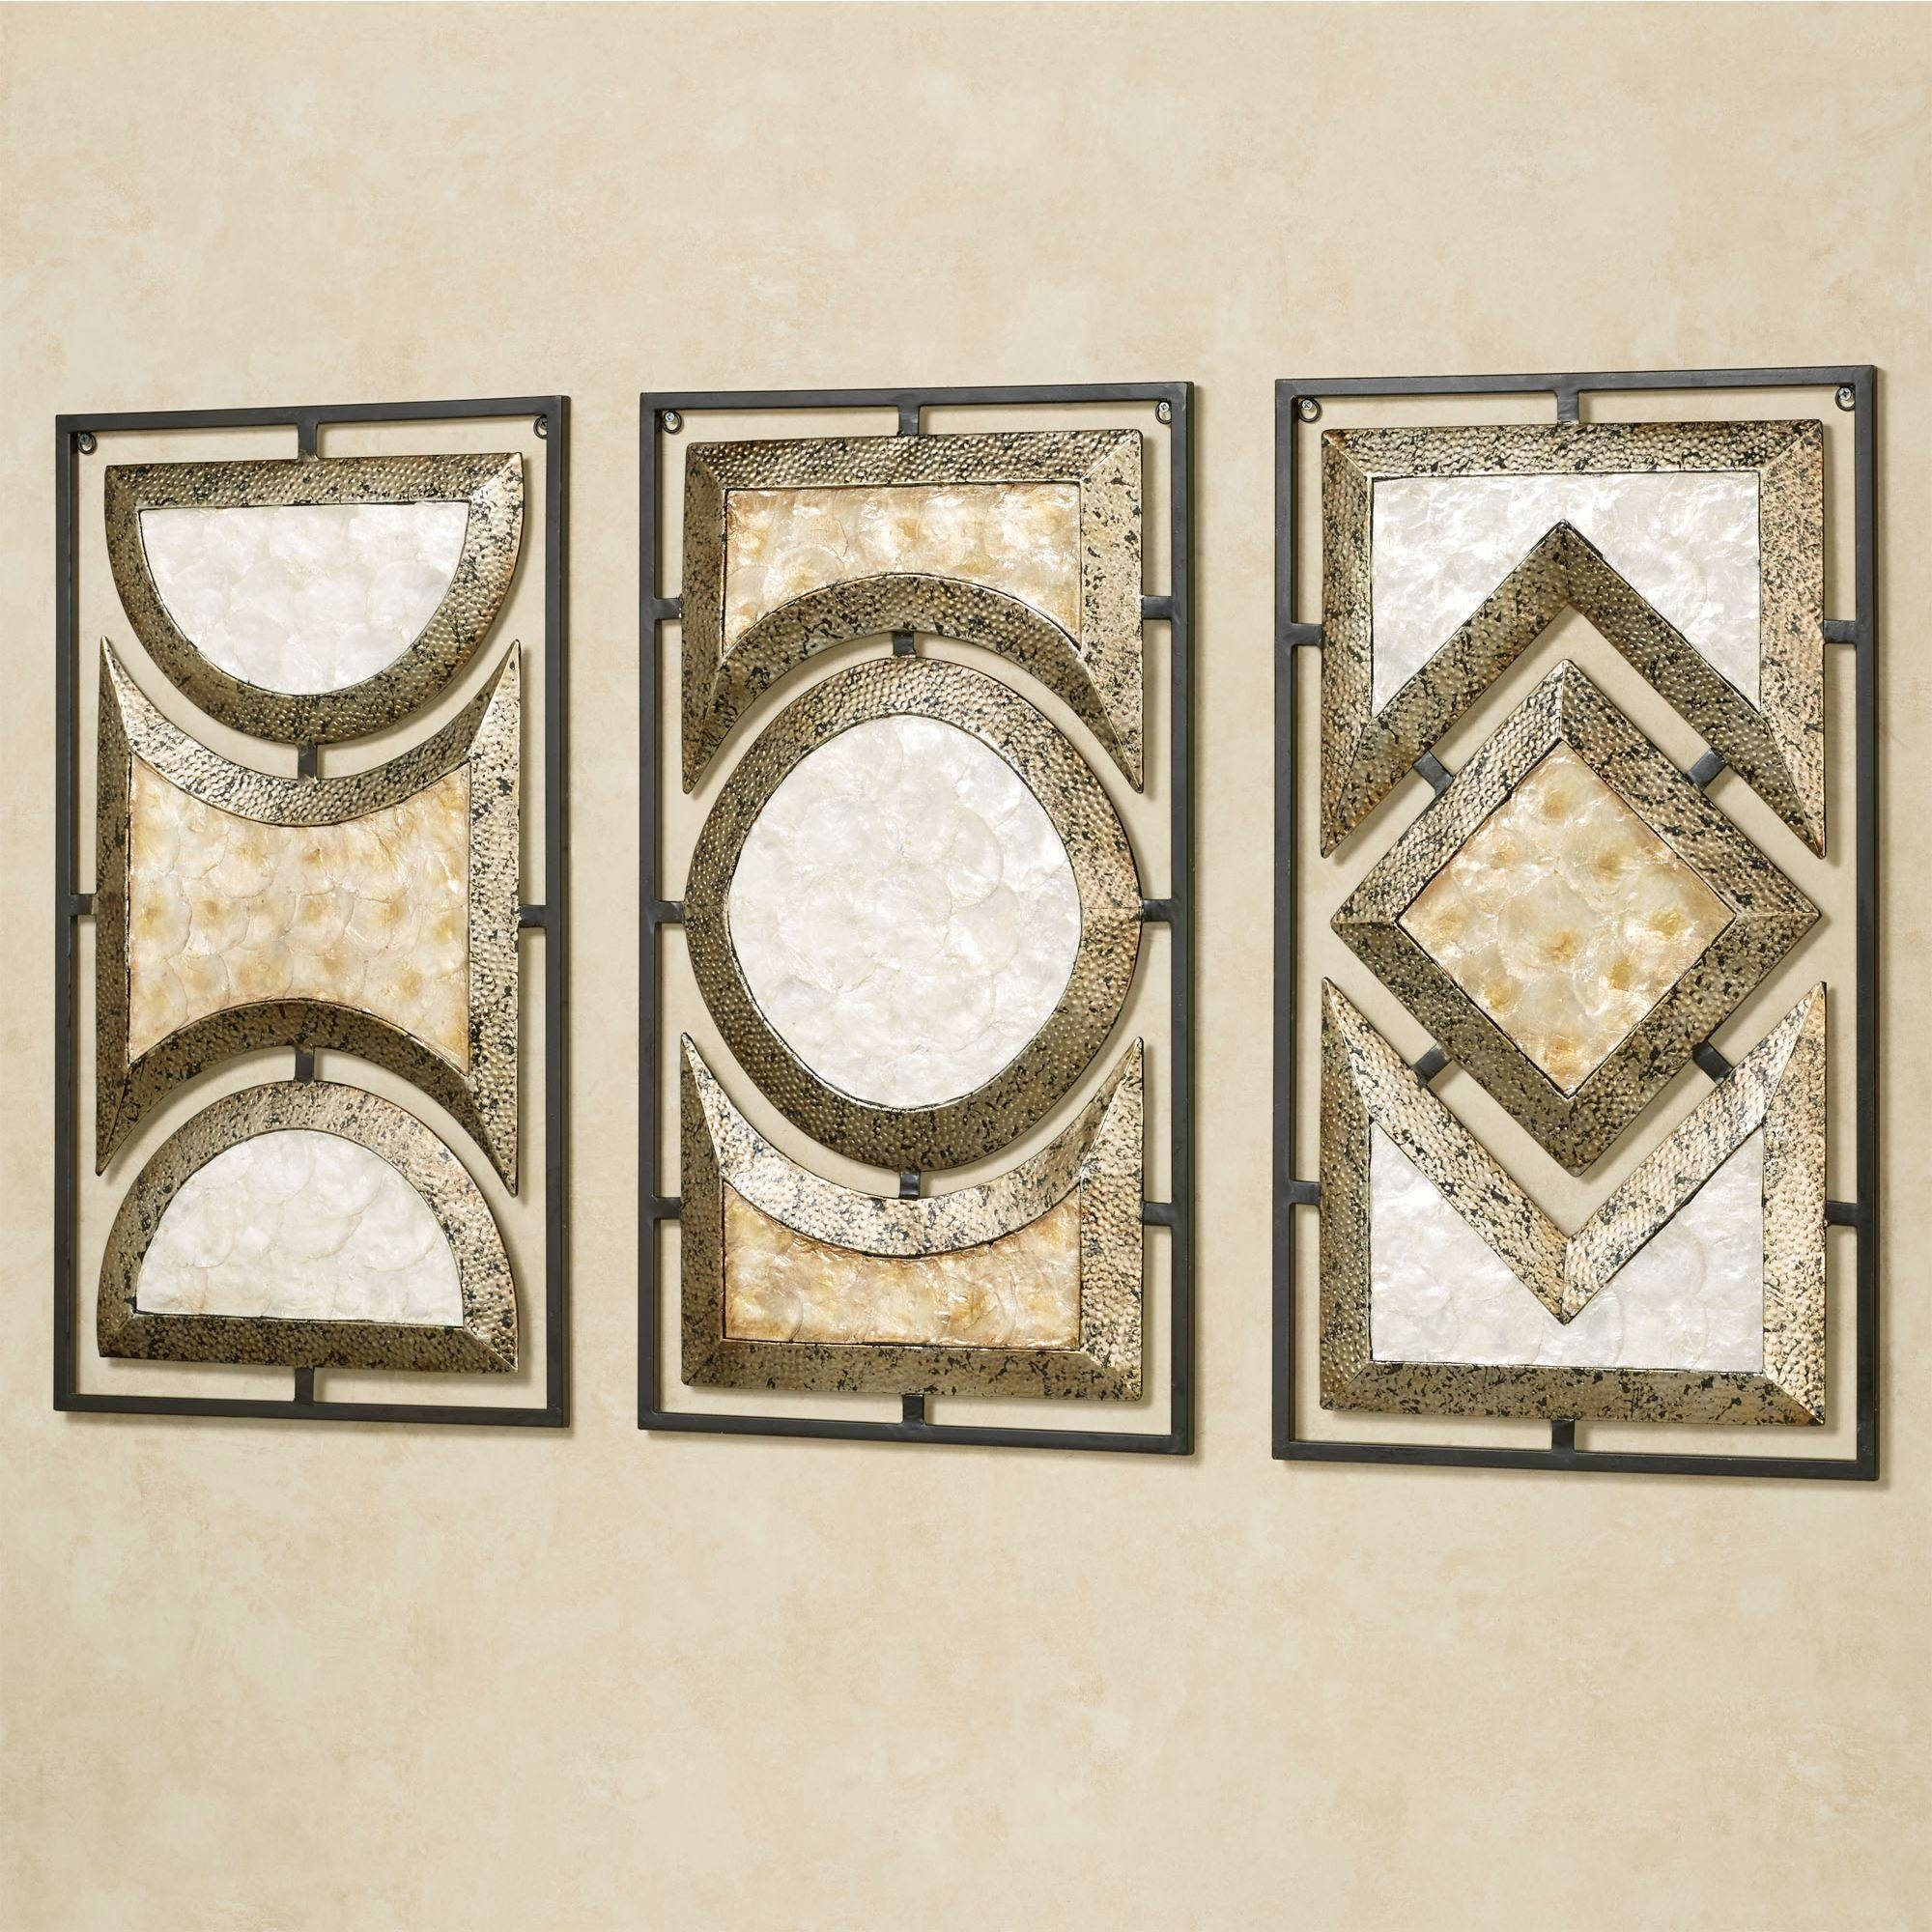 Wall Art, Metal Wall Art, Wooden Wall Art | Touch Of Class Within Recent Filigree Wall Art (View 23 of 30)